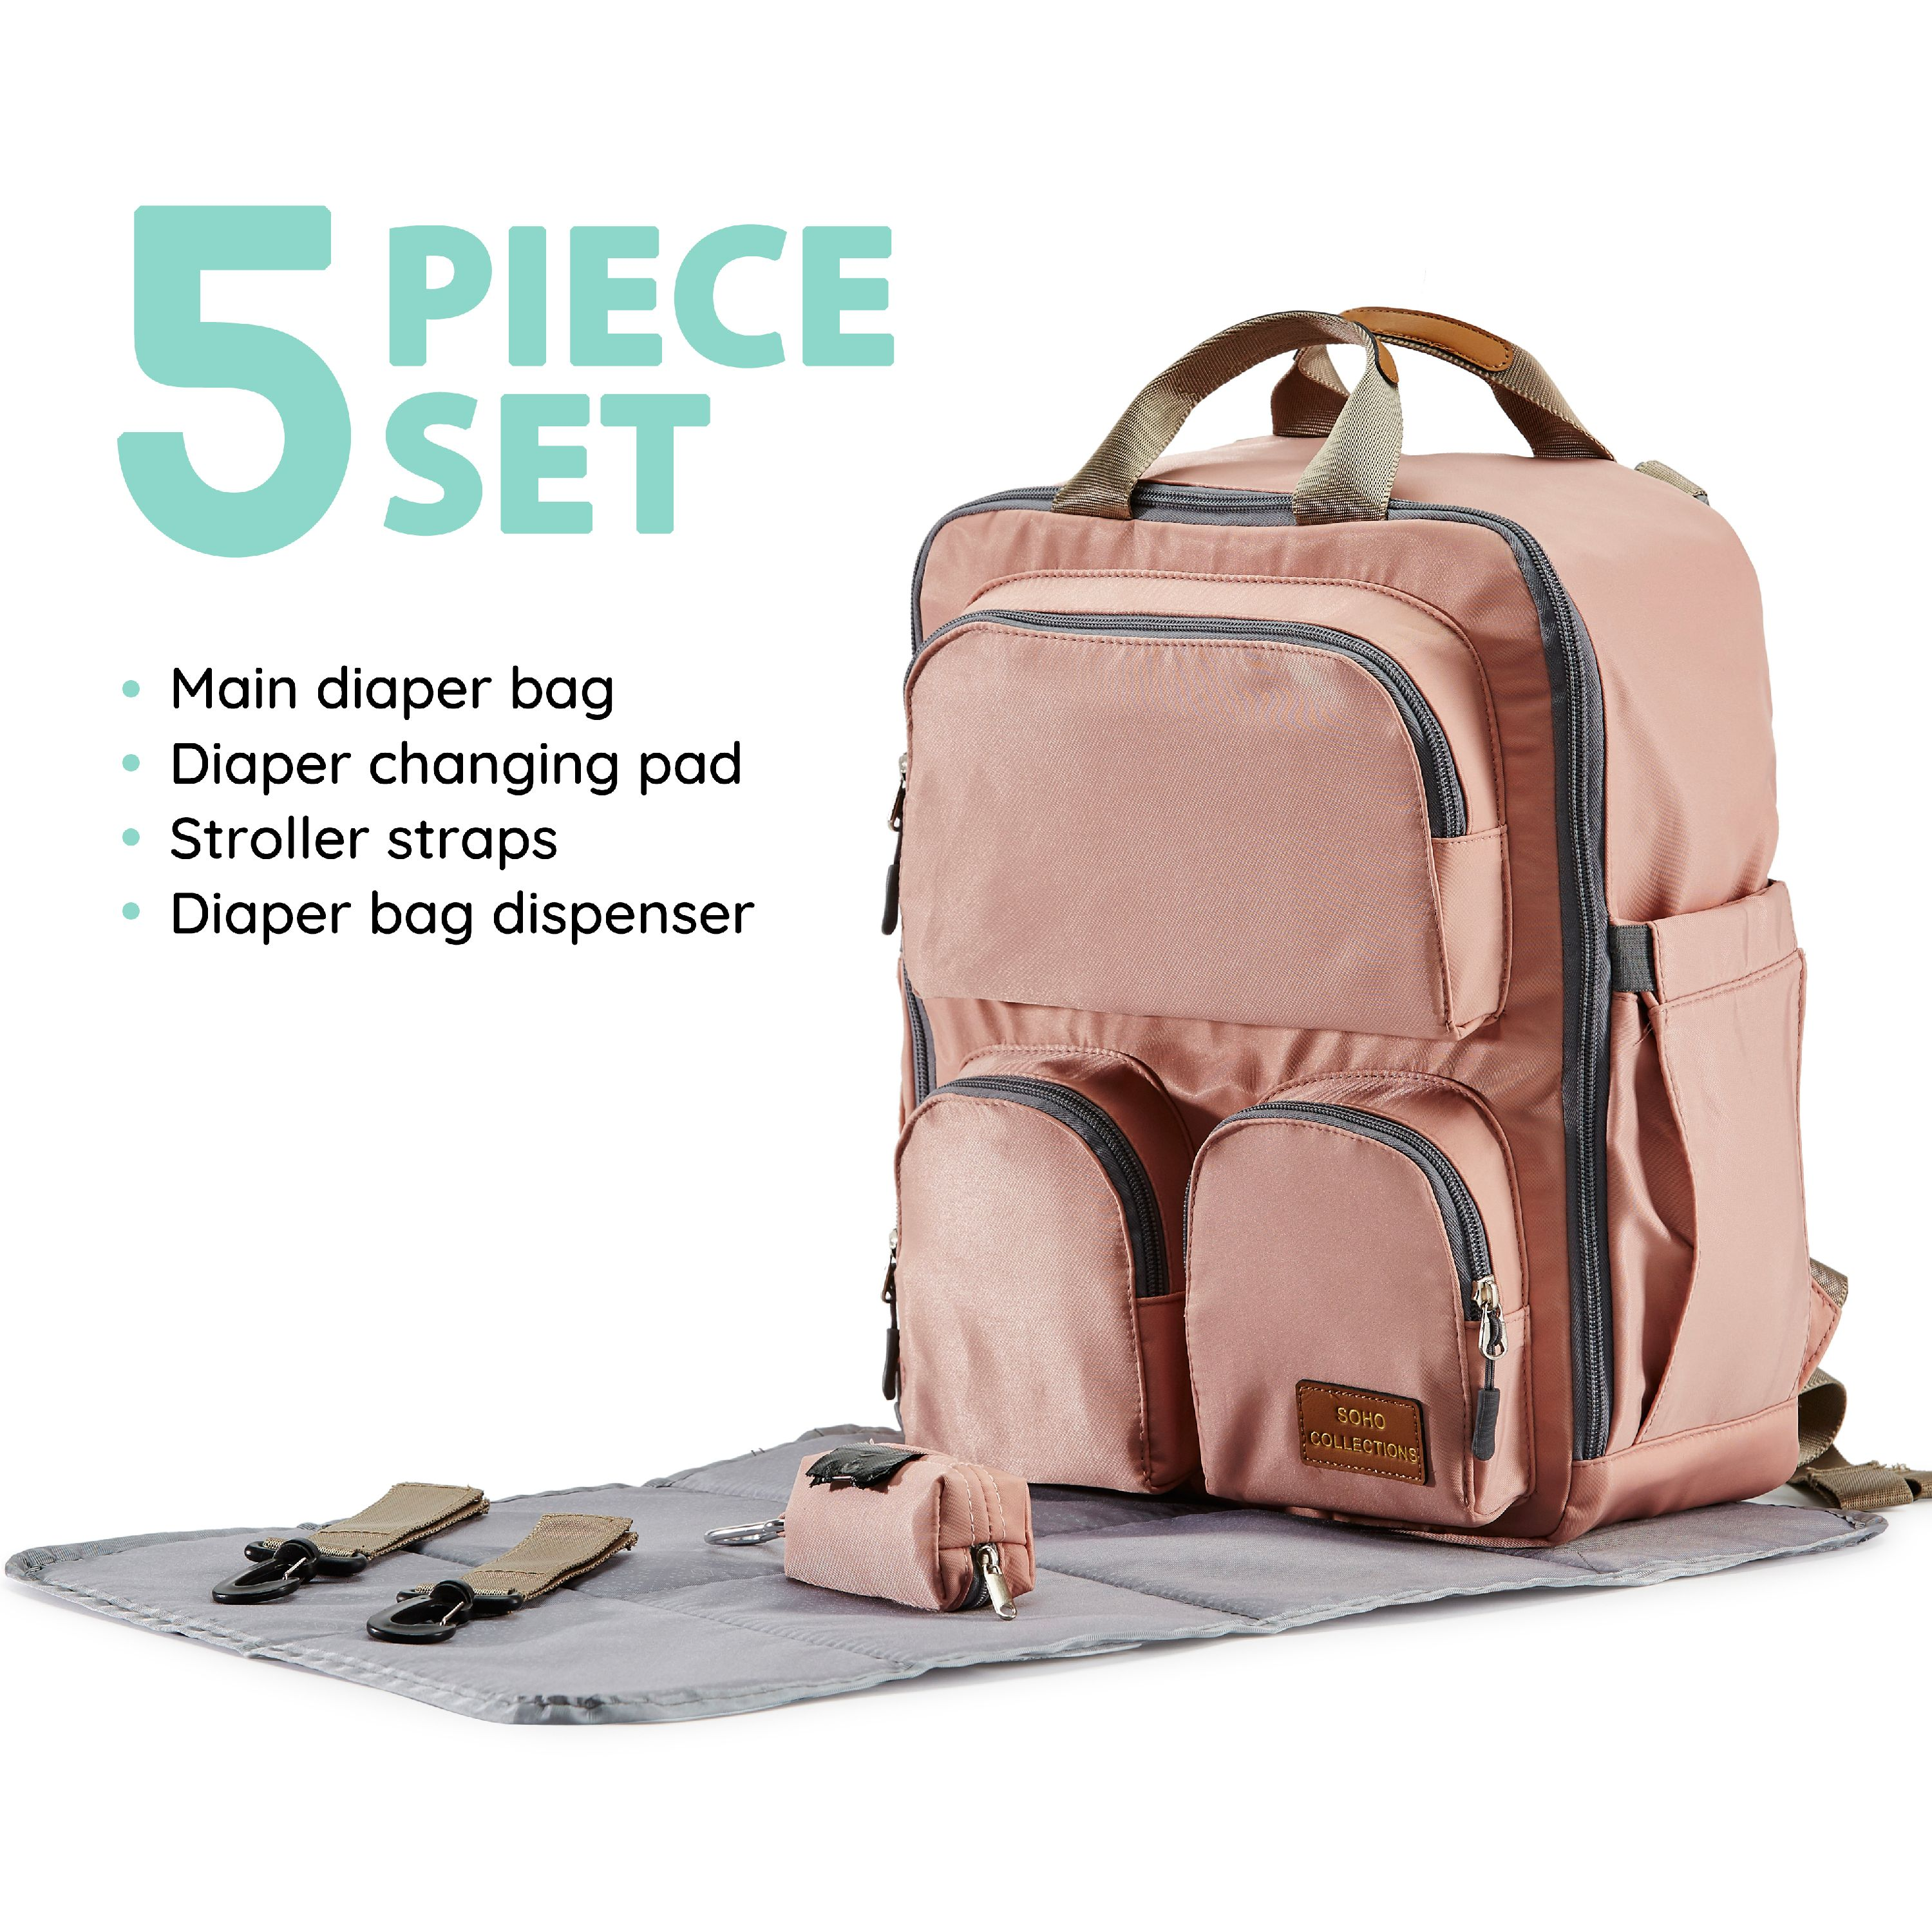 SoHo Collections, Waterproof Diaper Bag Tote Backpack, Unisex, 5 Piece Set with Stroller Straps, Daily Essential (Pink)